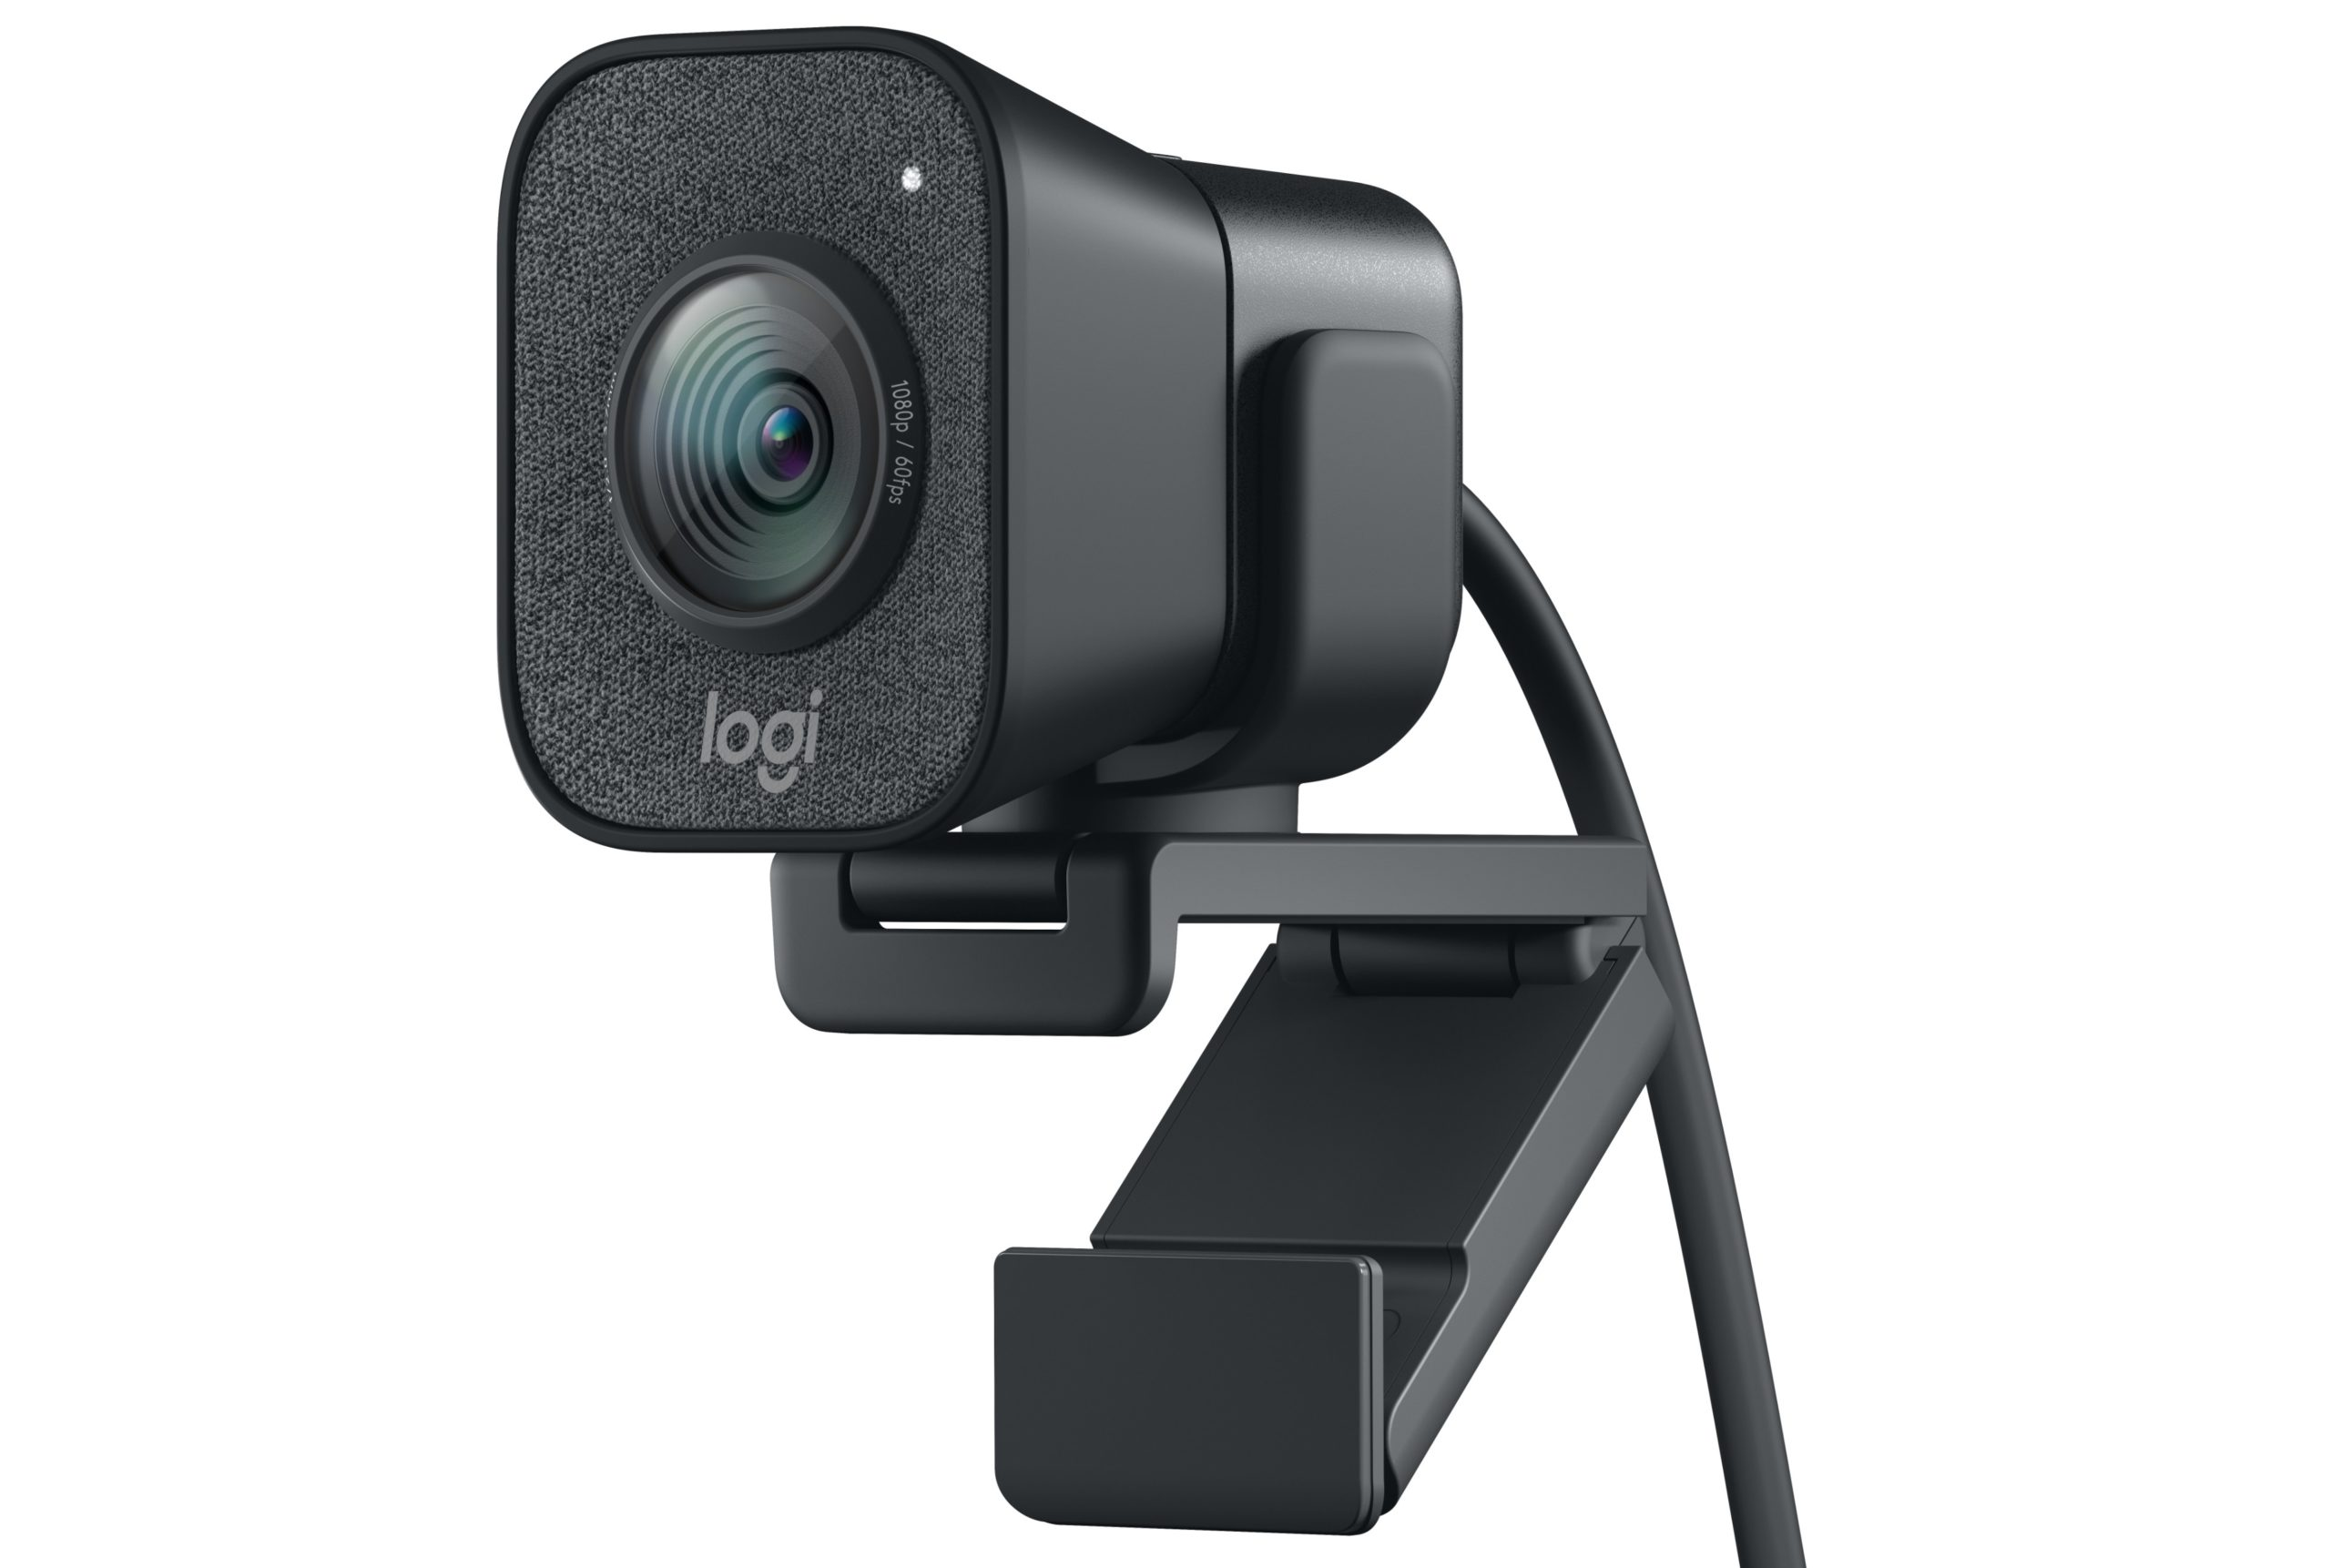 Paired with Logitech Capture software, the new StreamCam makes streaming video smart.